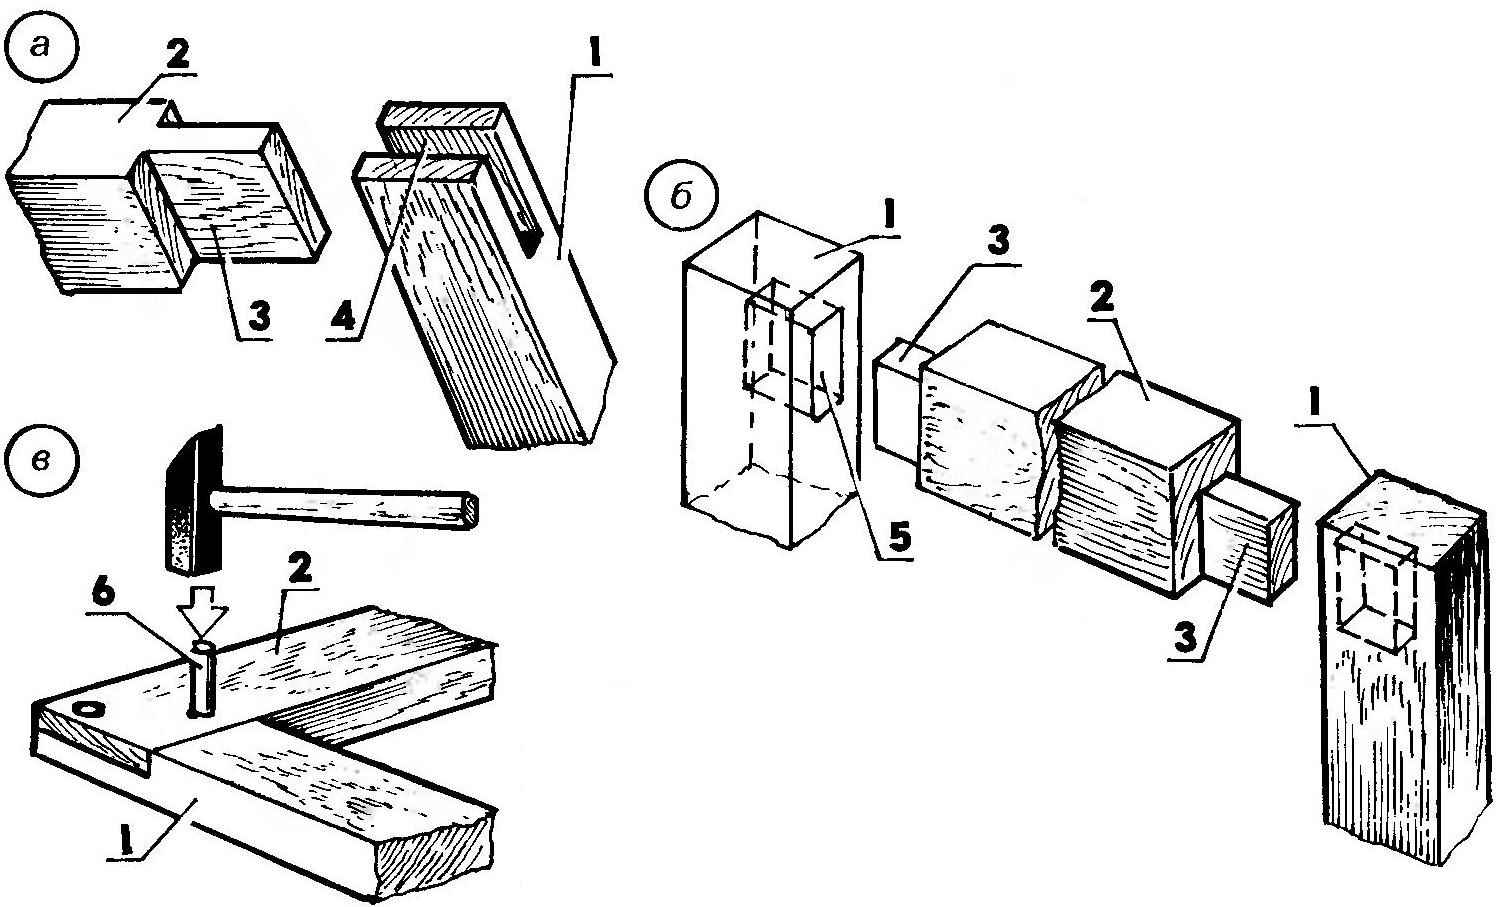 Fig. 2. Possible corner joints of the frame